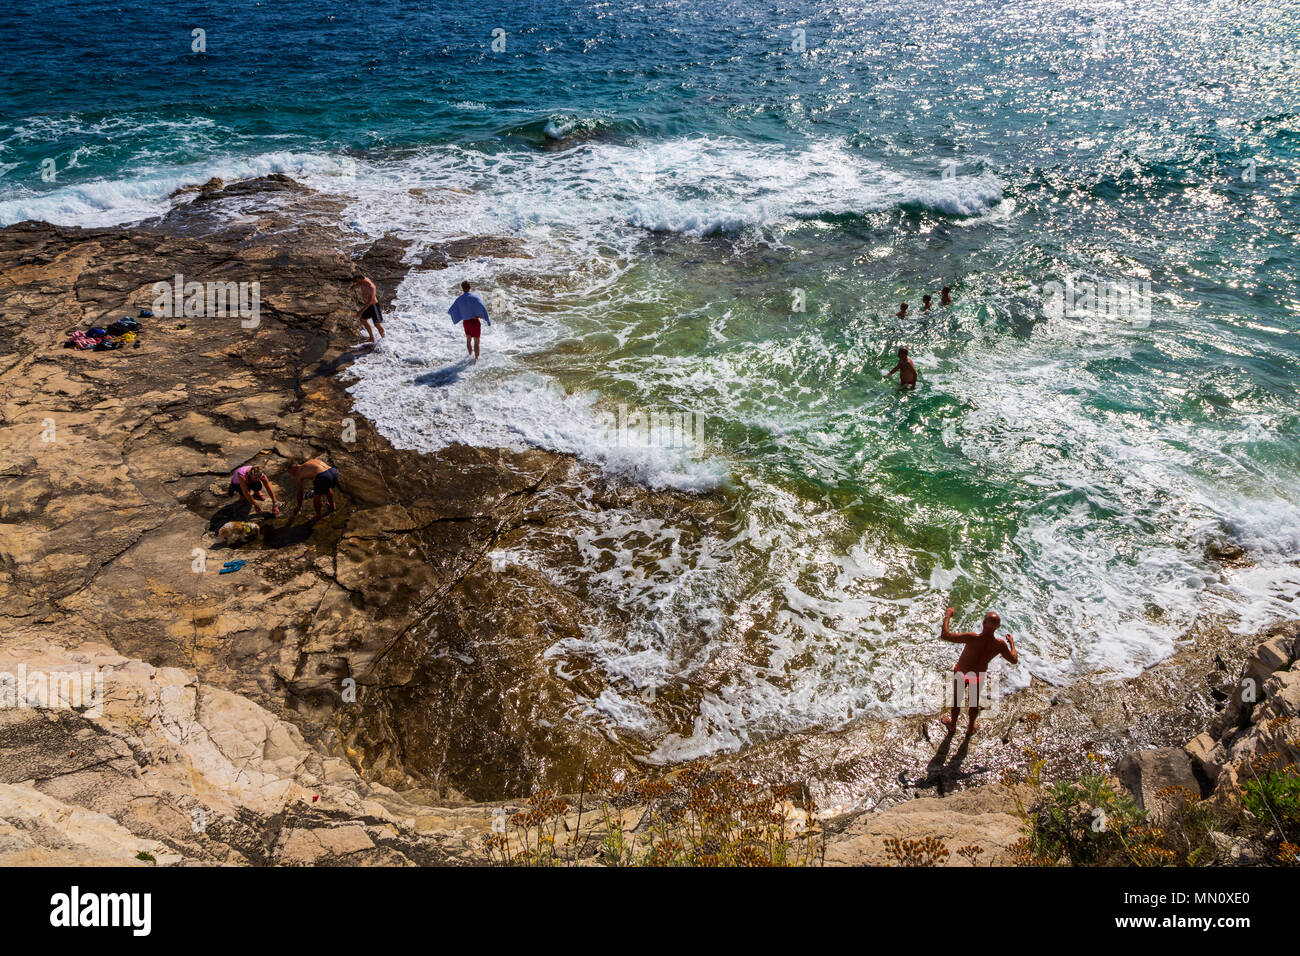 People on a rocky beach in Pula, Croatia - Stock Image